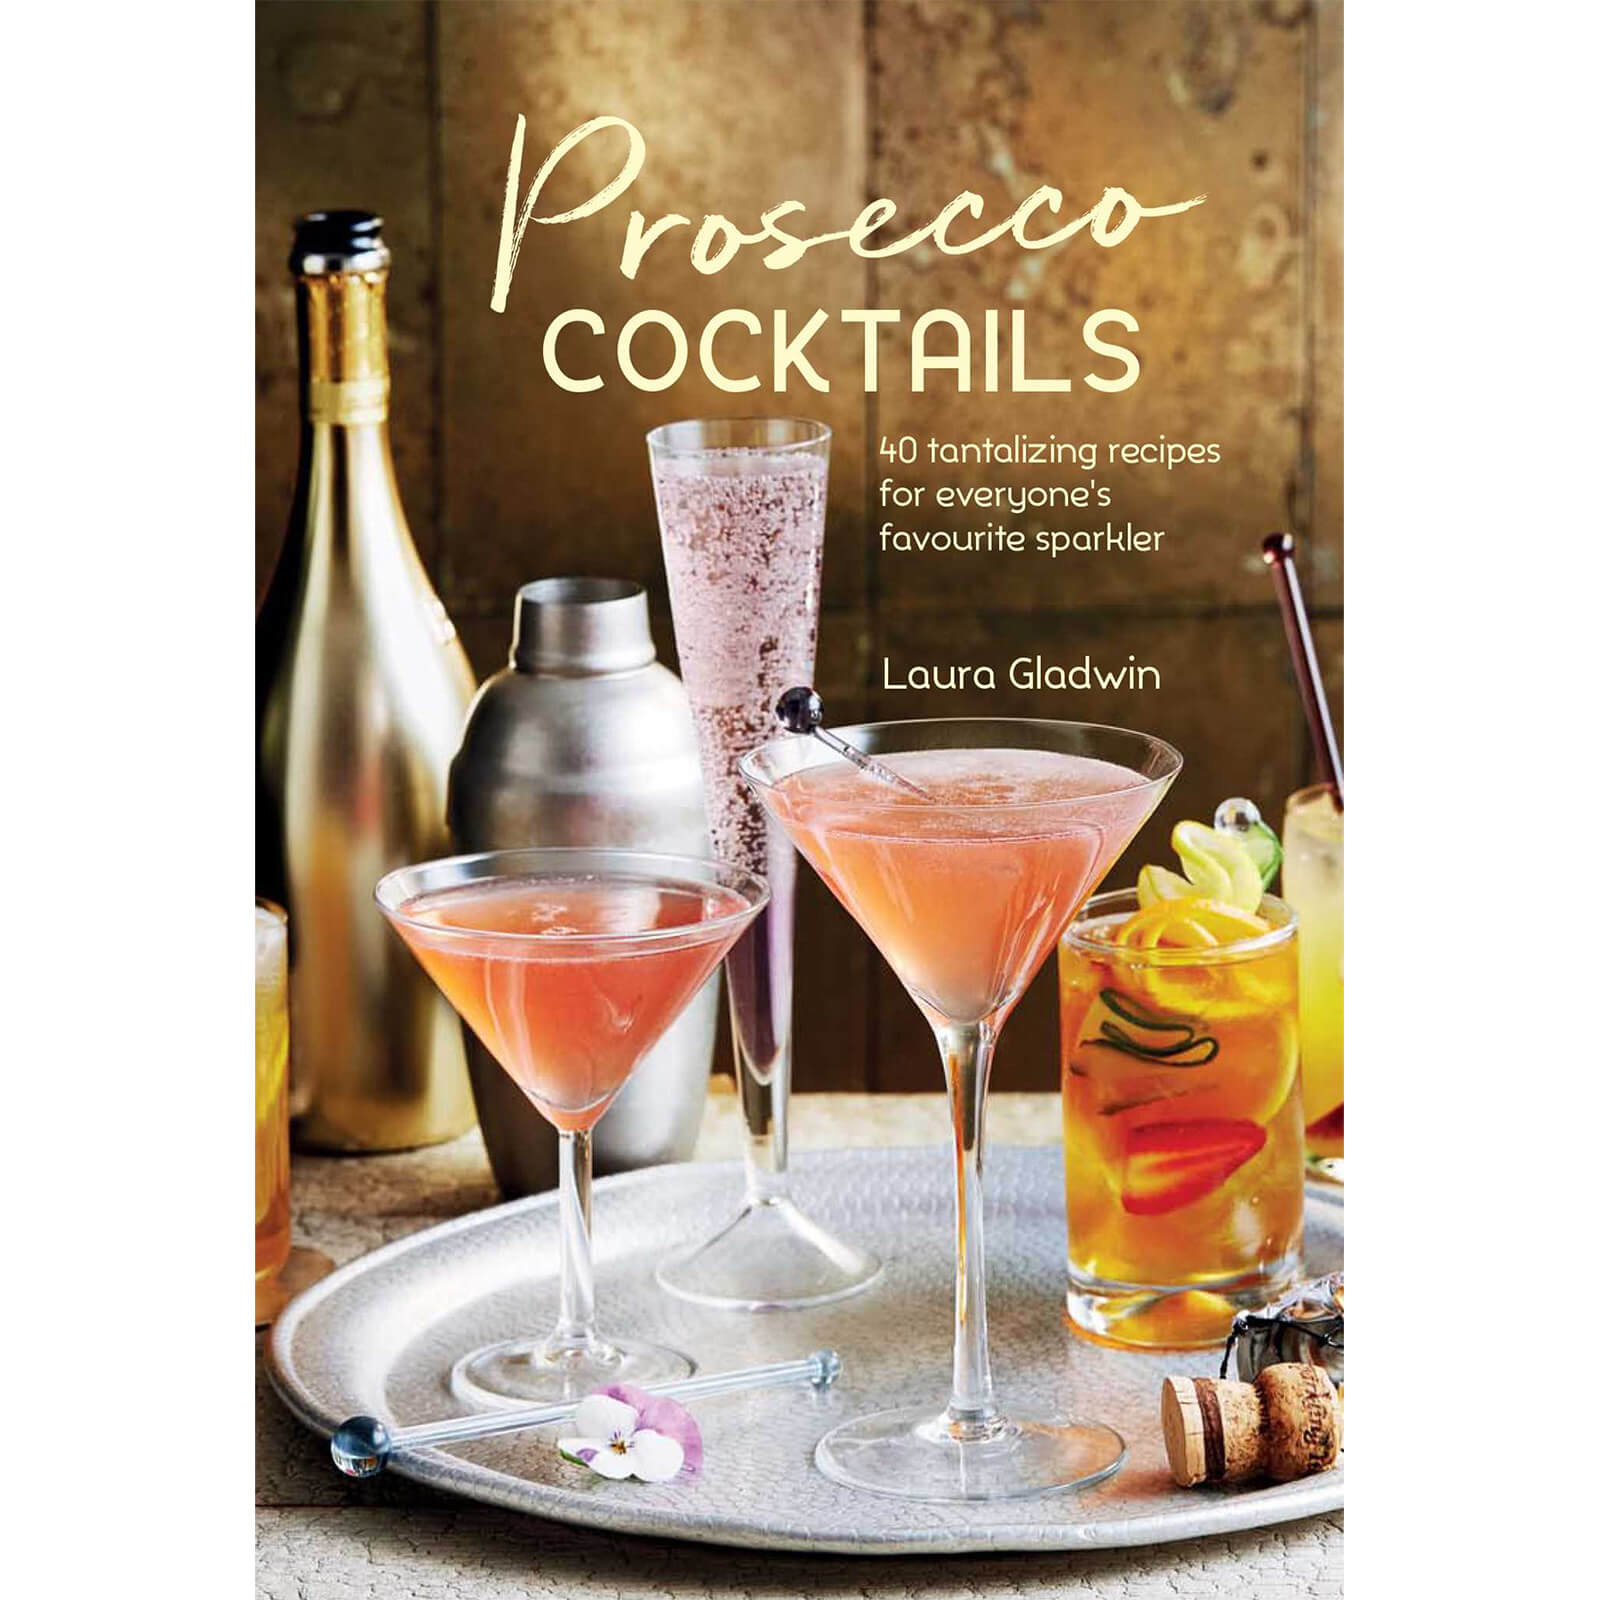 Prosecco Cocktails - 40 Tantalizing Recipes (Hardback)